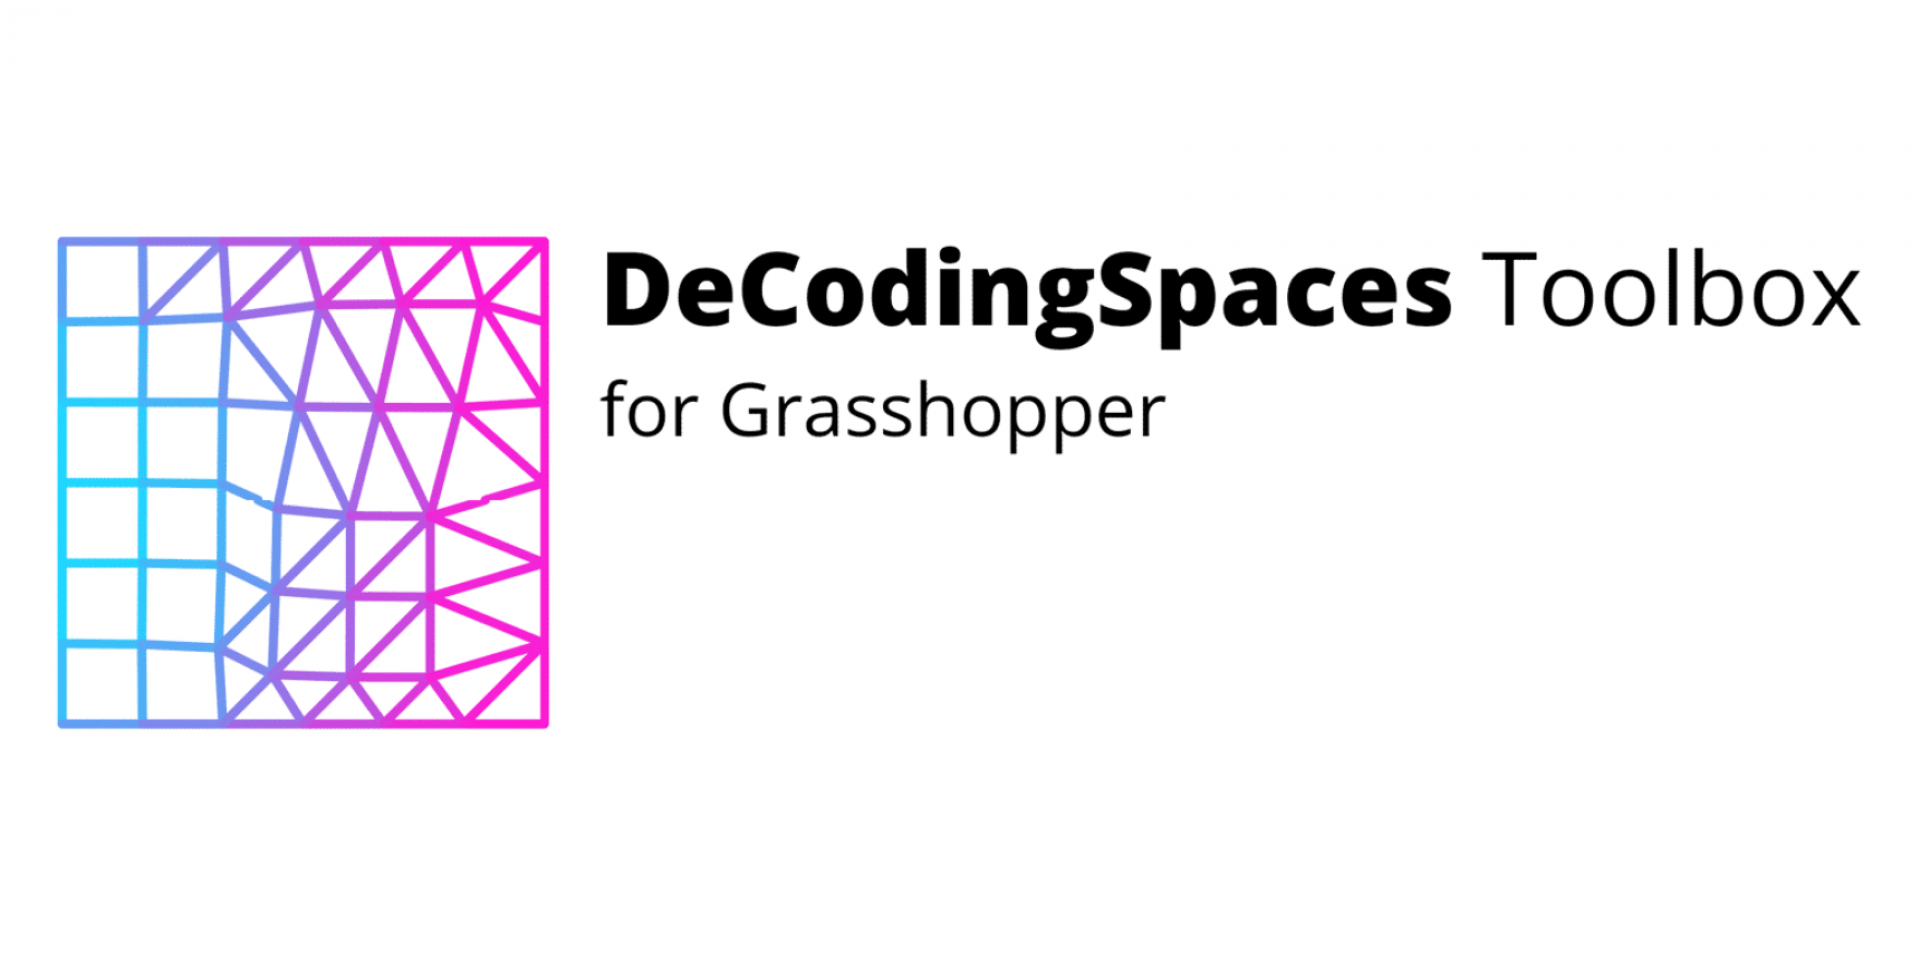 DeCodingSpaces-Toolbox